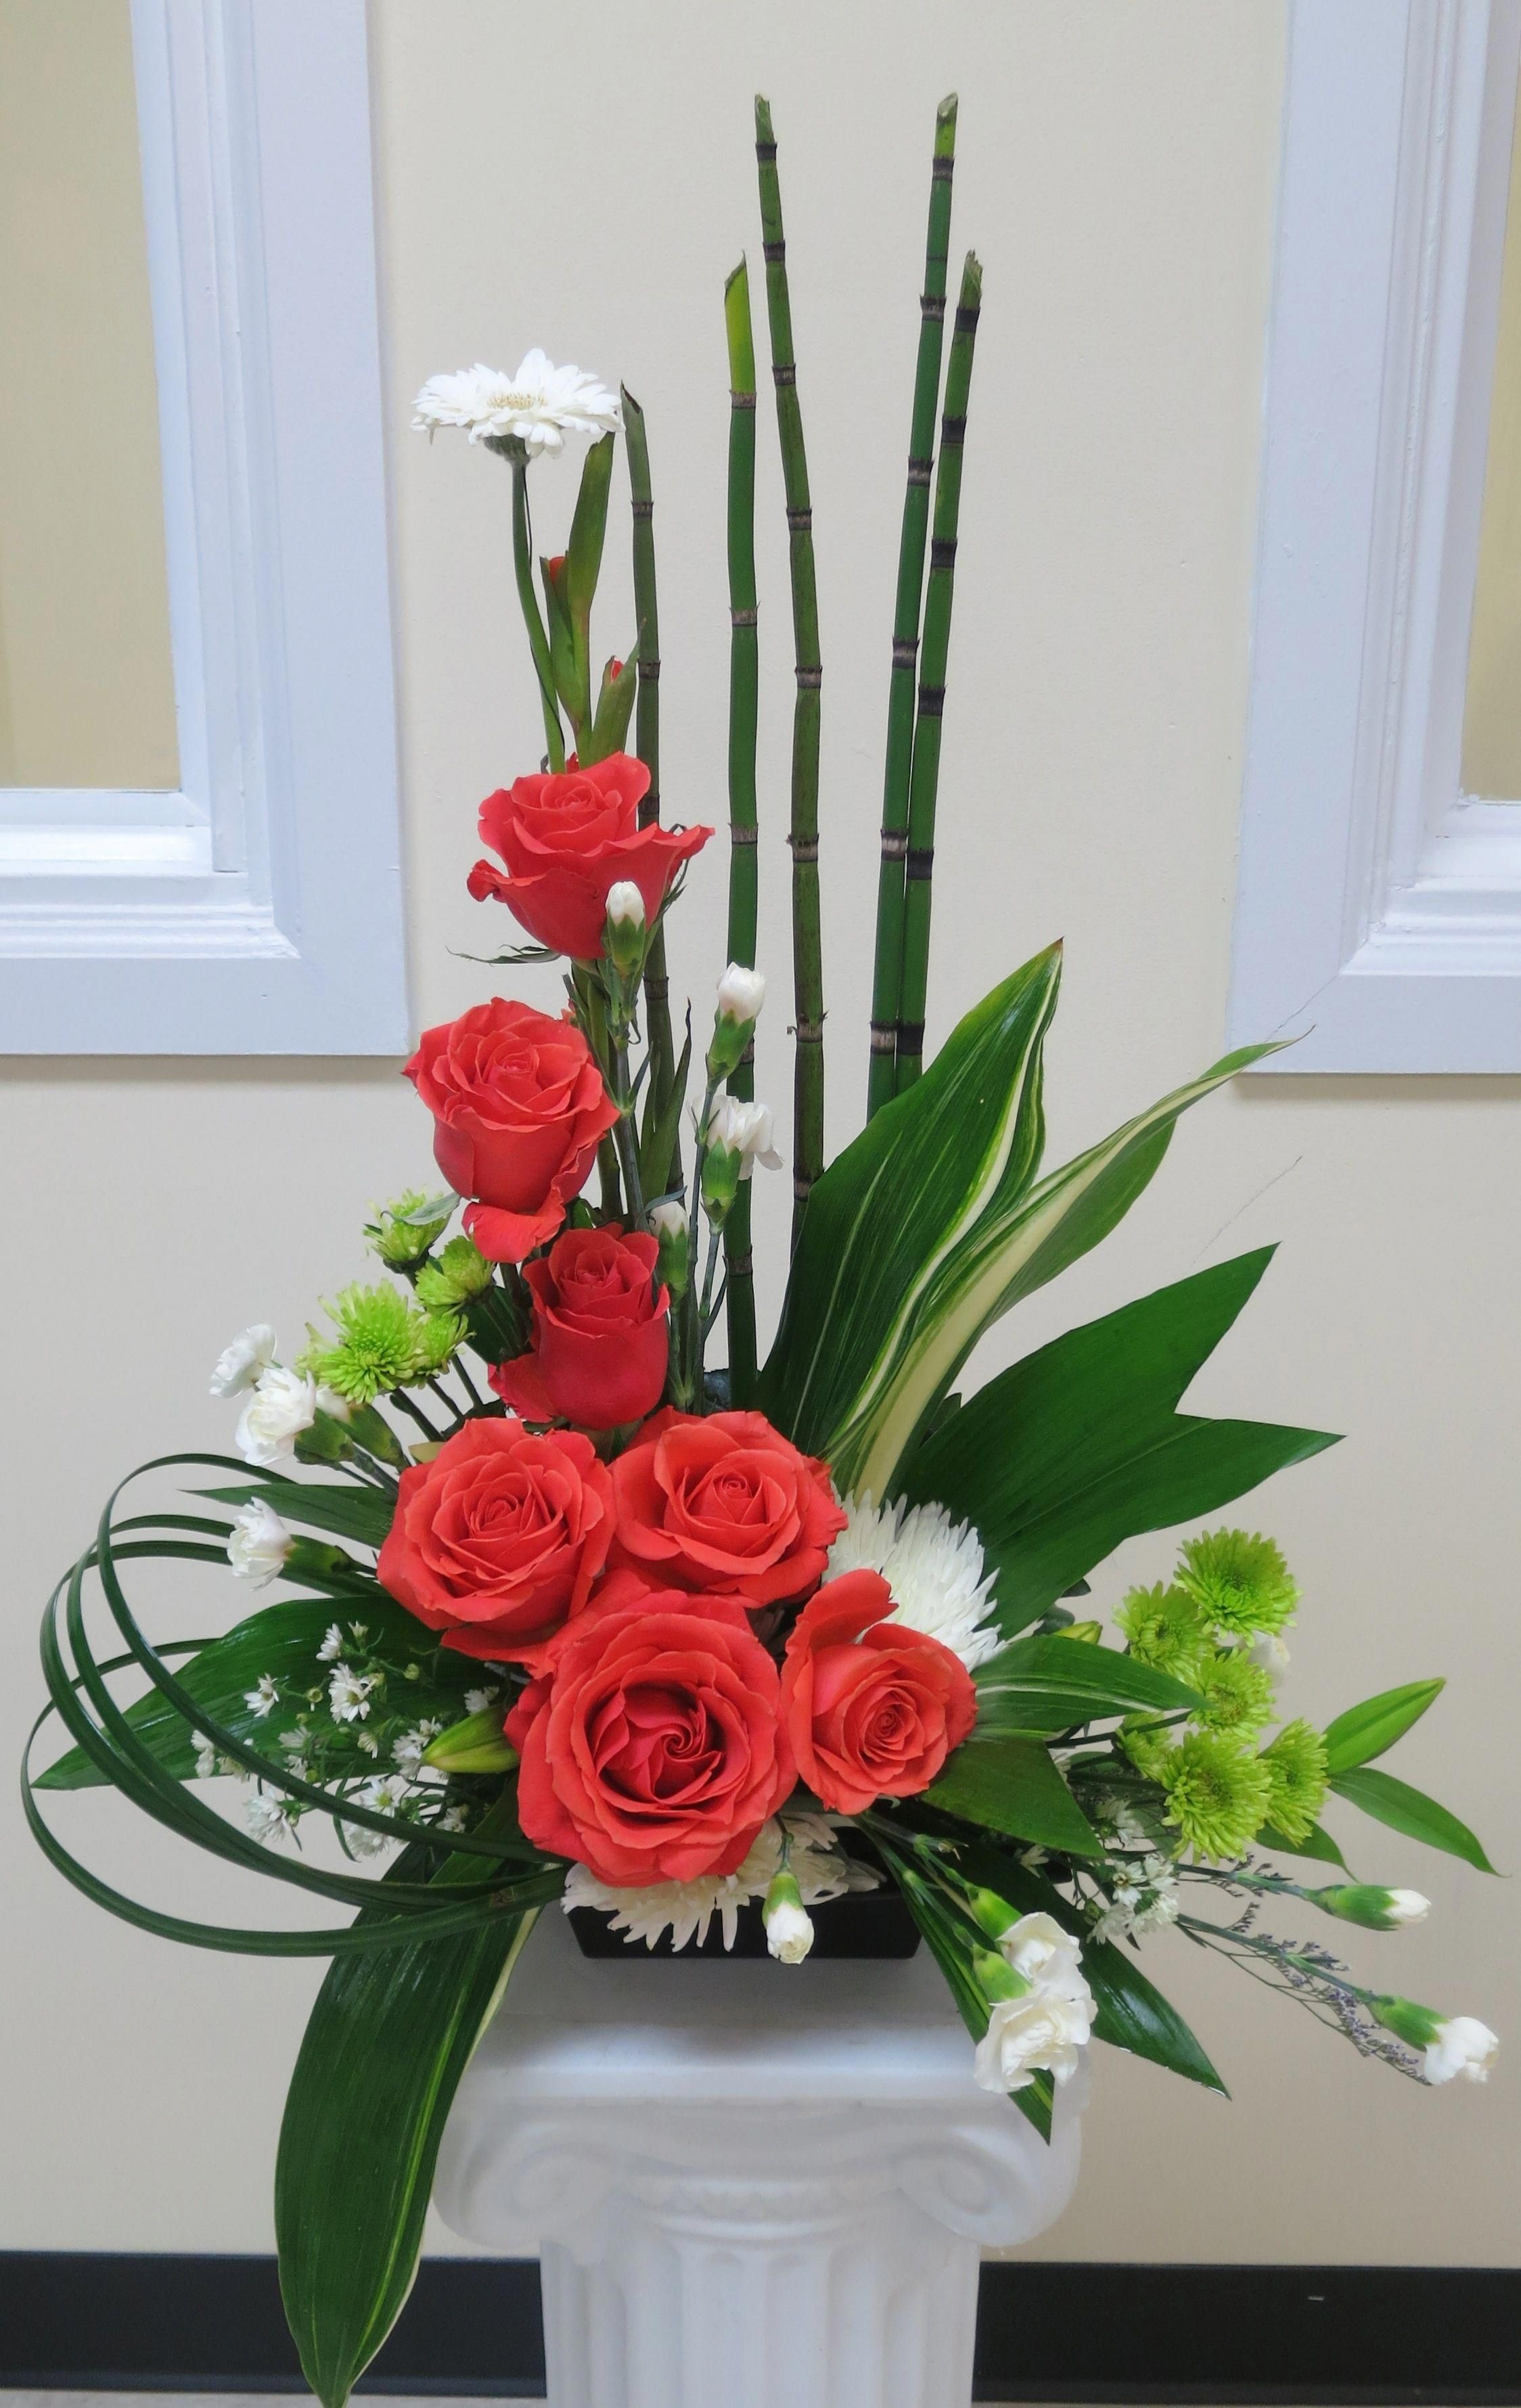 Image Result For Flower Arrangements For Church Beautifulflowers